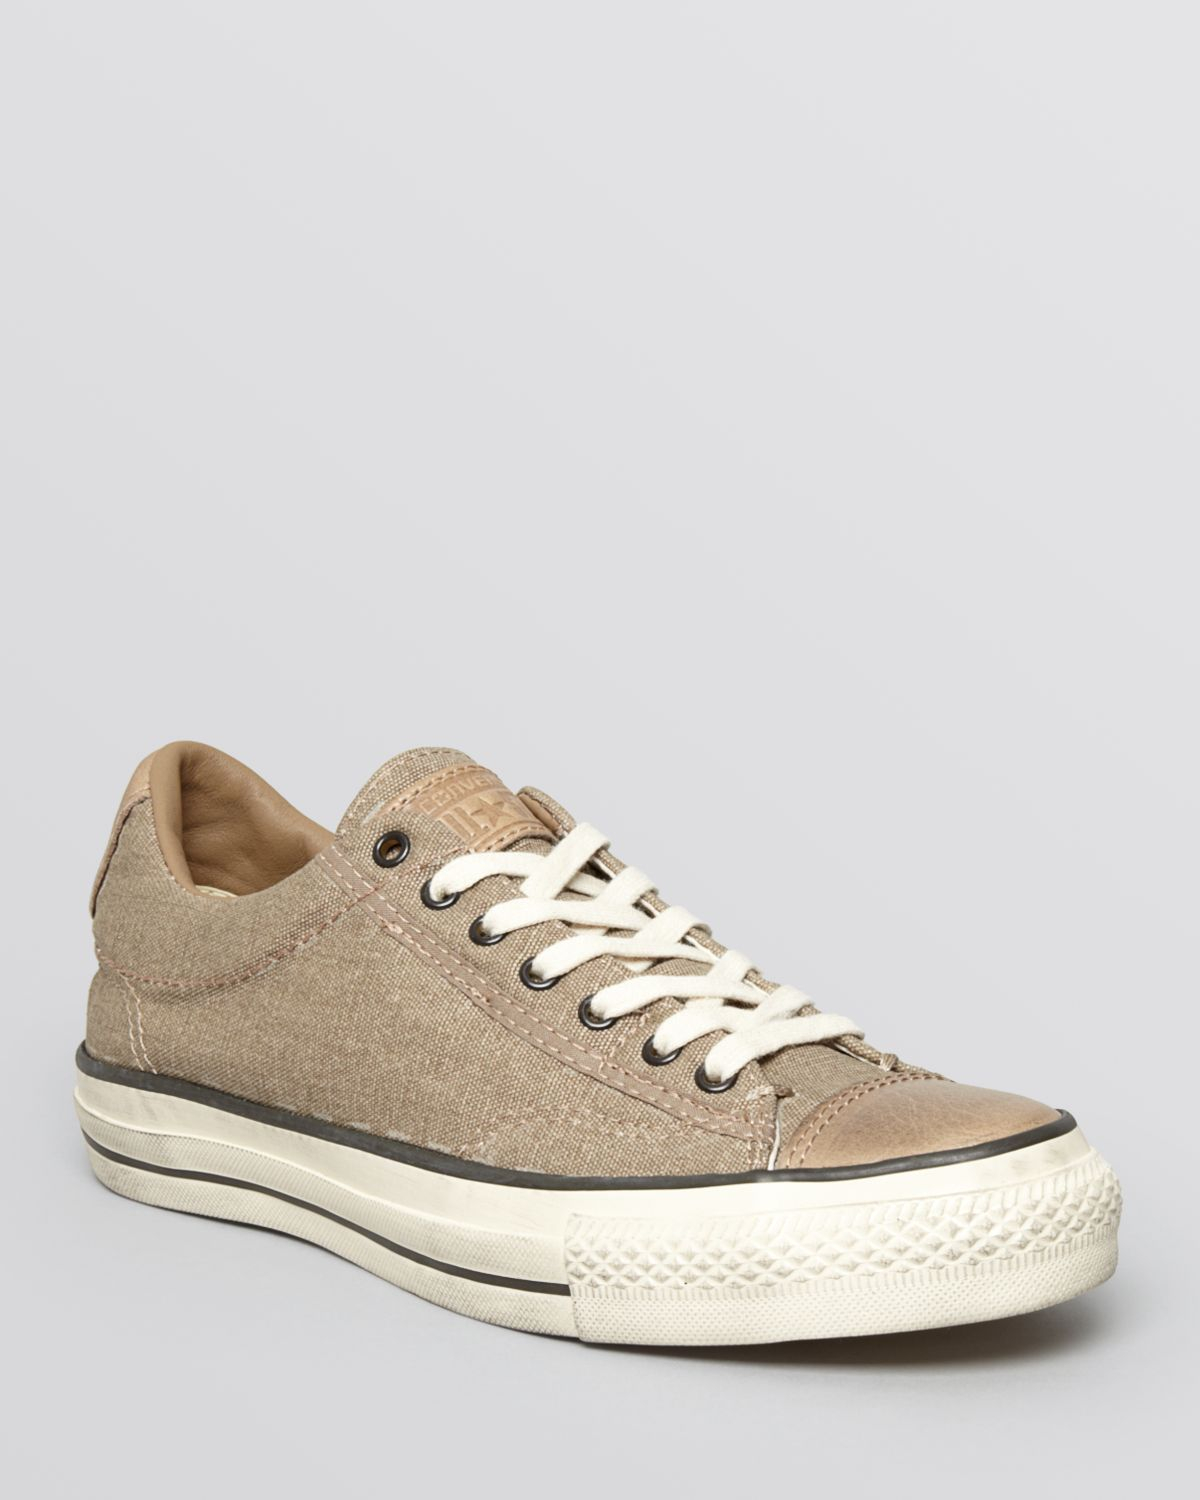 d70540e74f8b Lyst - Converse Jv All Star Pigment-dyed Low Top Sneakers in Brown ...